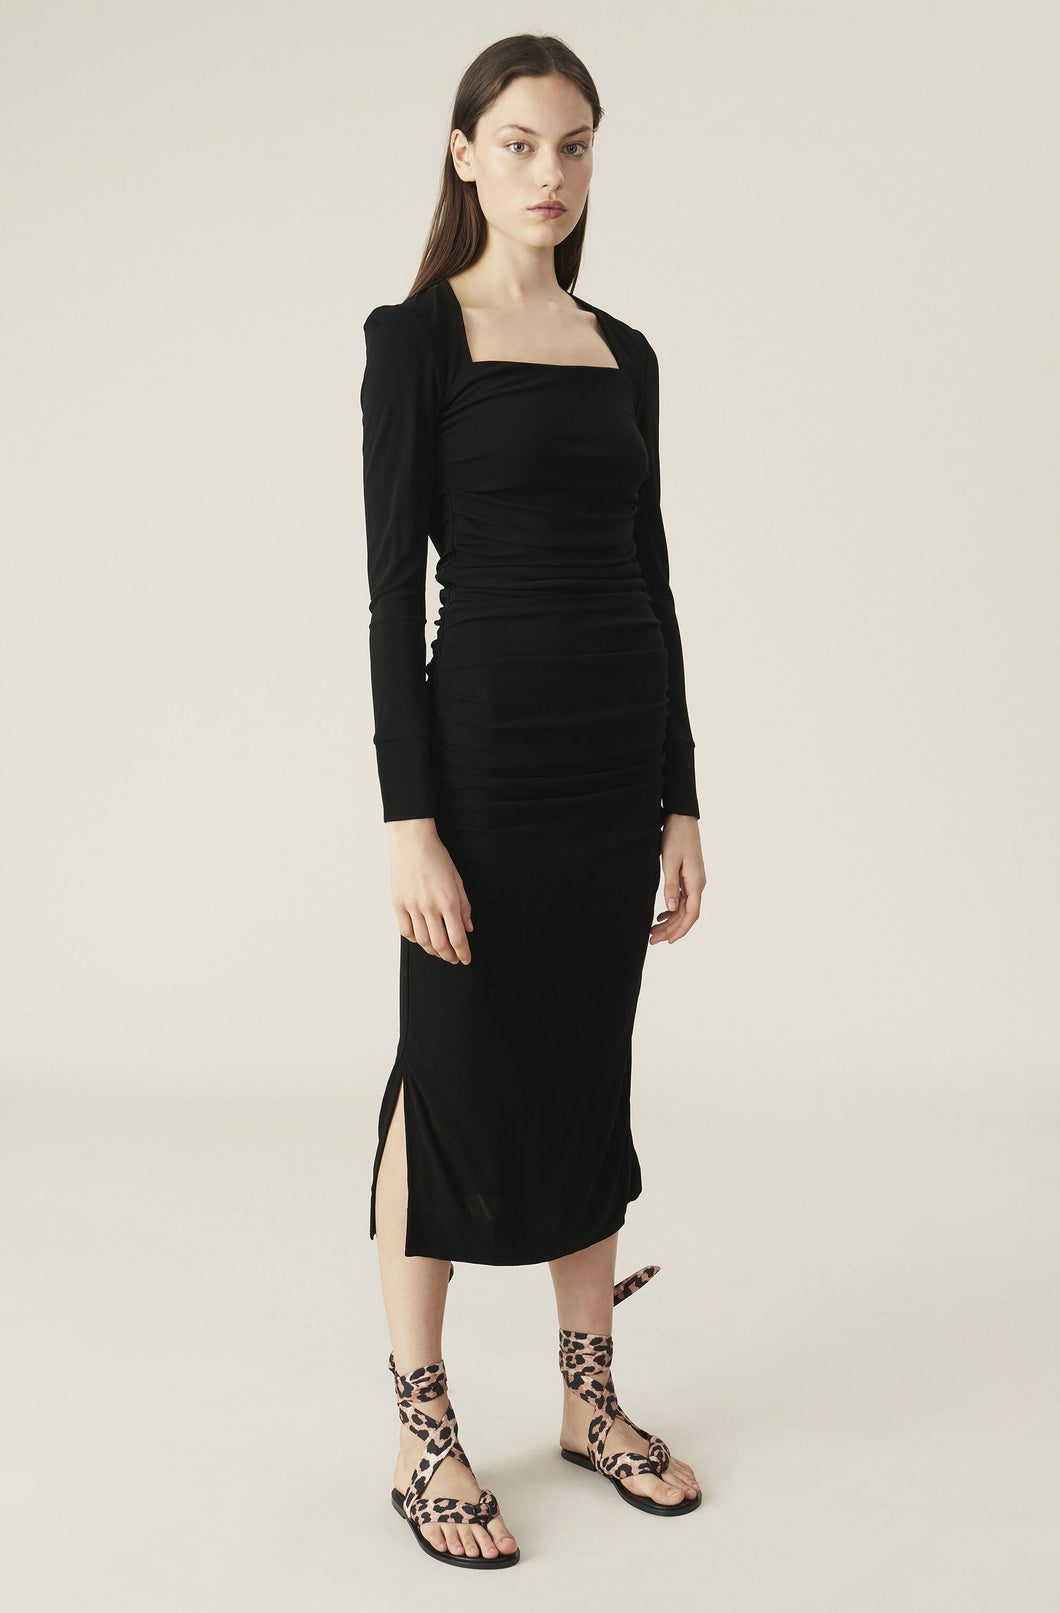 Black Viscose Jersey, Dress - Lindner Fashion